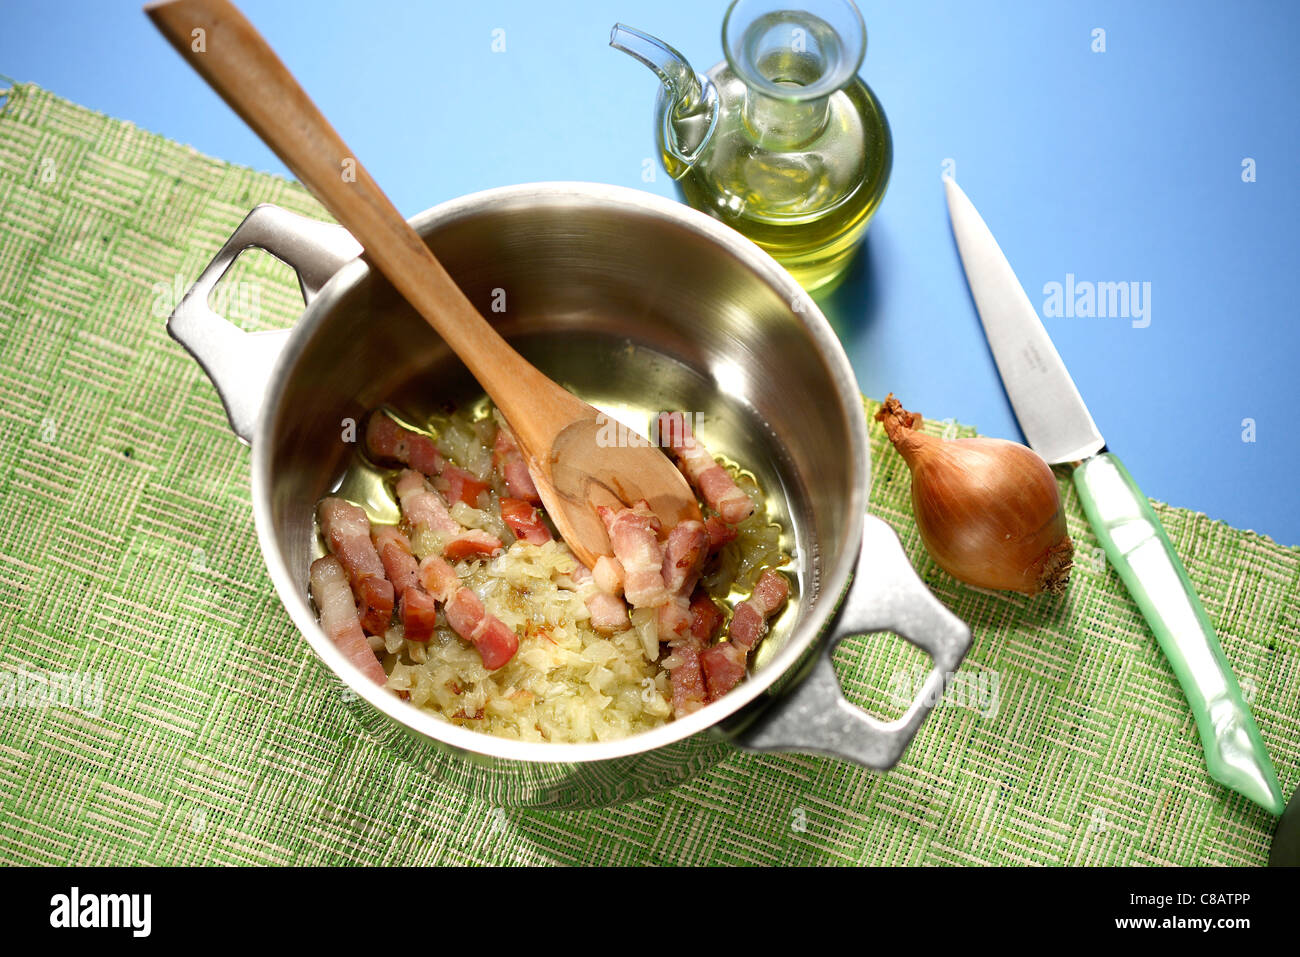 Cooking the diced bacon and onions in a casserole dish - Stock Image